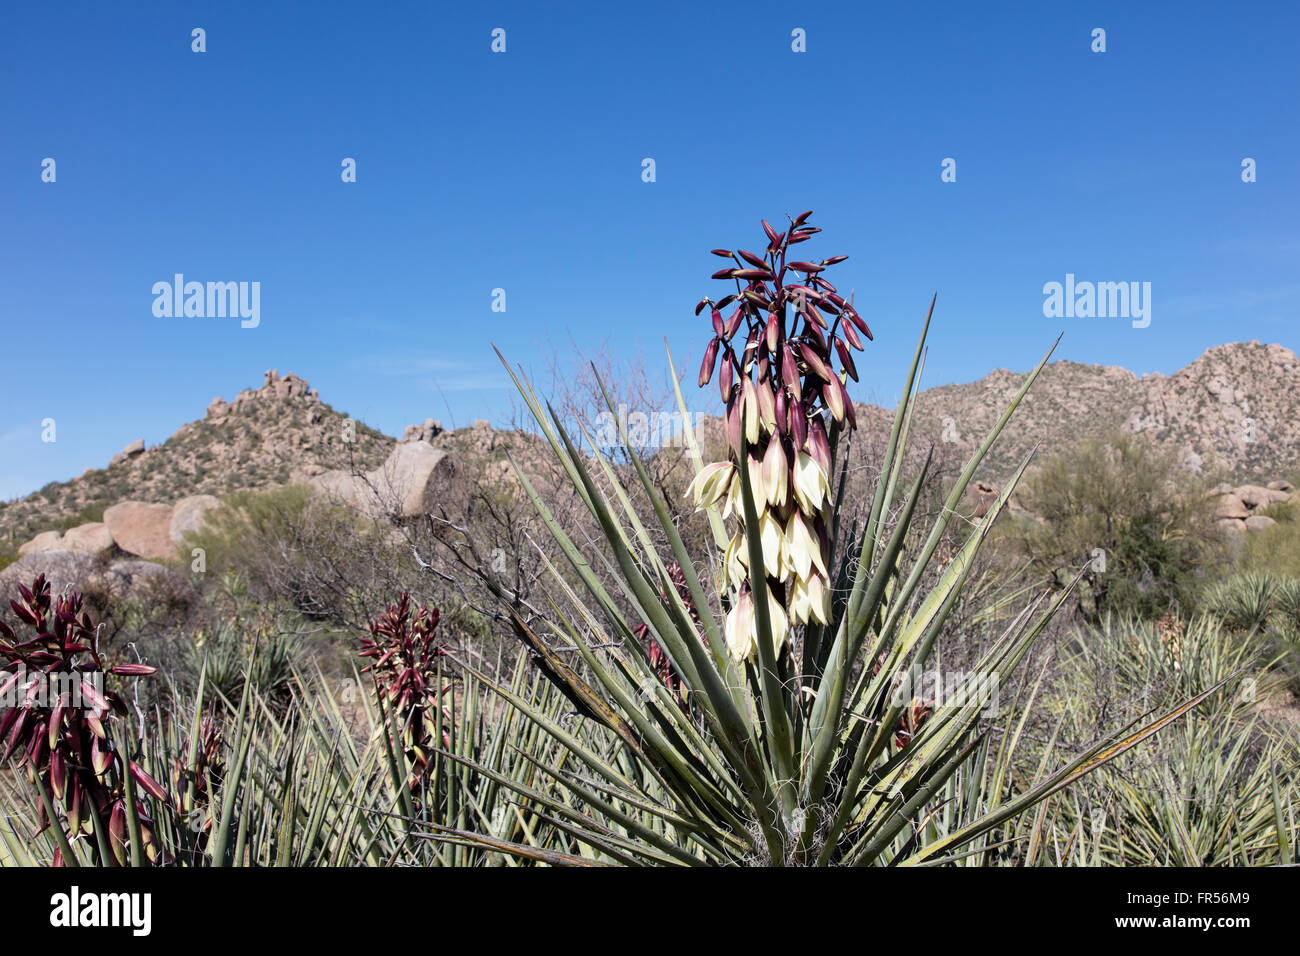 Spring flowering Banana Yucca in the southwestern desert USA - Stock Image